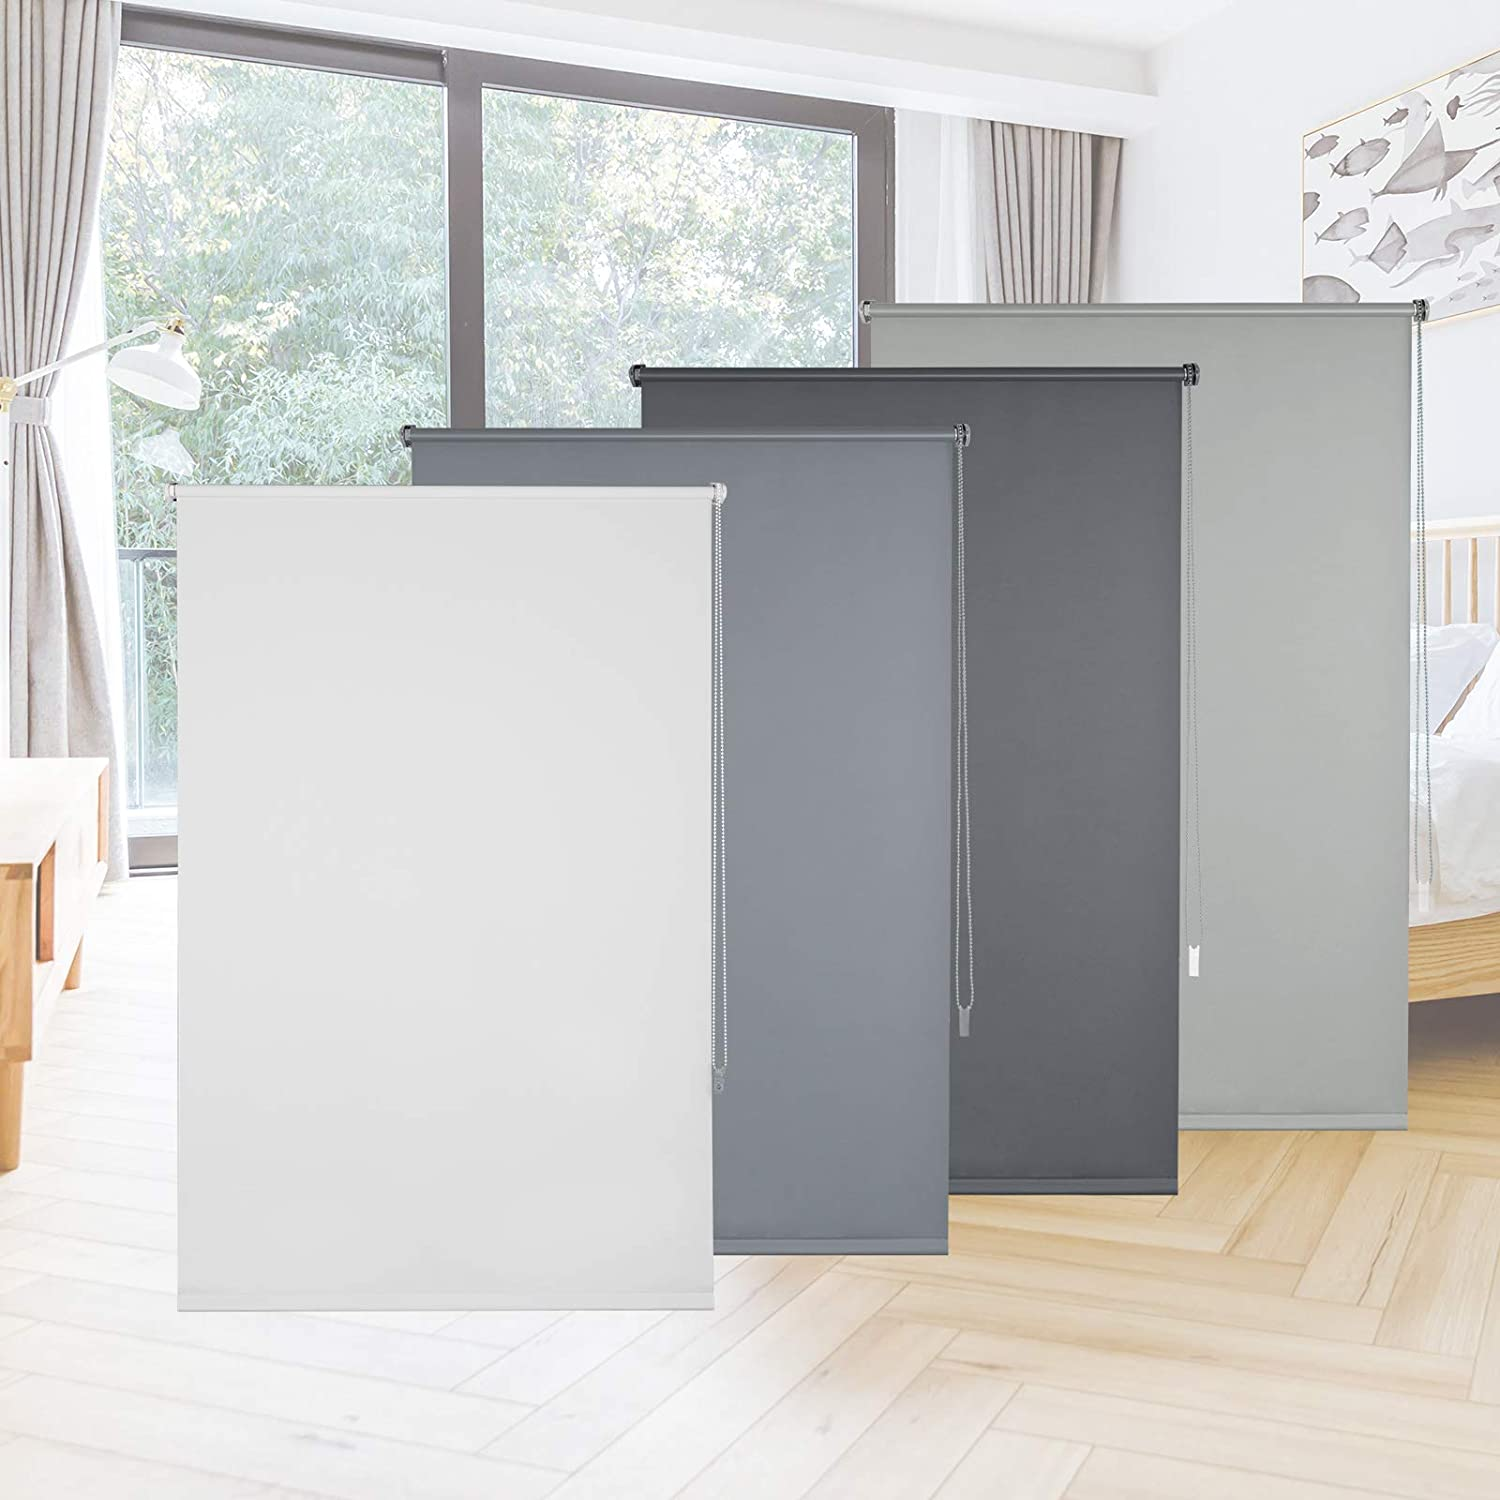 EUGAD Blackout Roller Blind for Window No Drilling Blind with Fittings and Coating in Same Colour Grey 100 x 160 cm